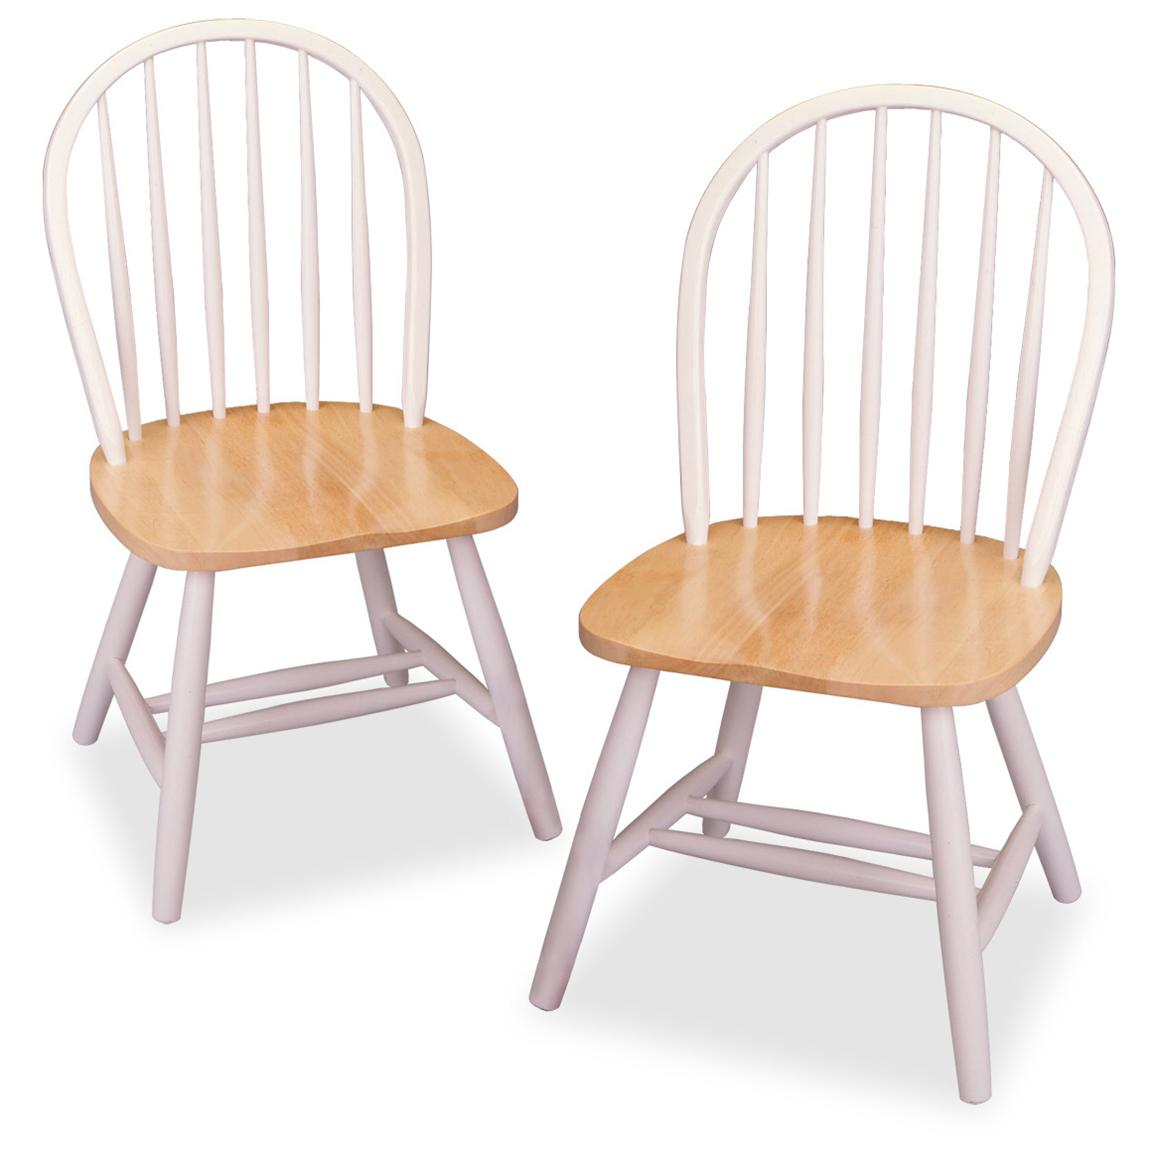 Winsome Set of 2 Natural & White Windsor Chairs